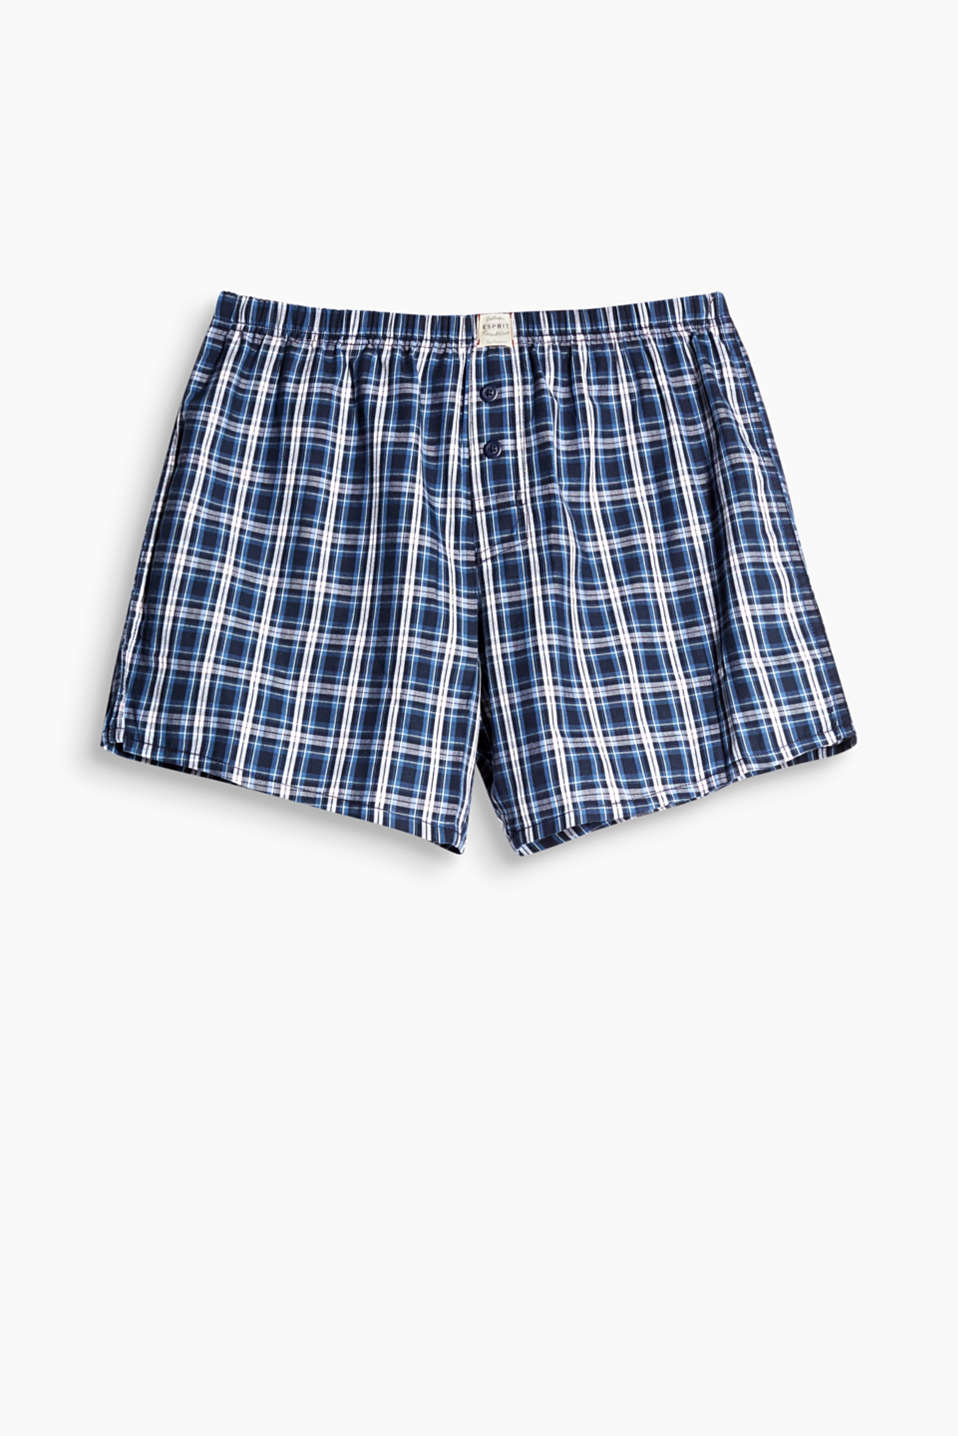 Boxer shorts are an unmissable basic. This pair in pure cotton sport a modern check pattern.